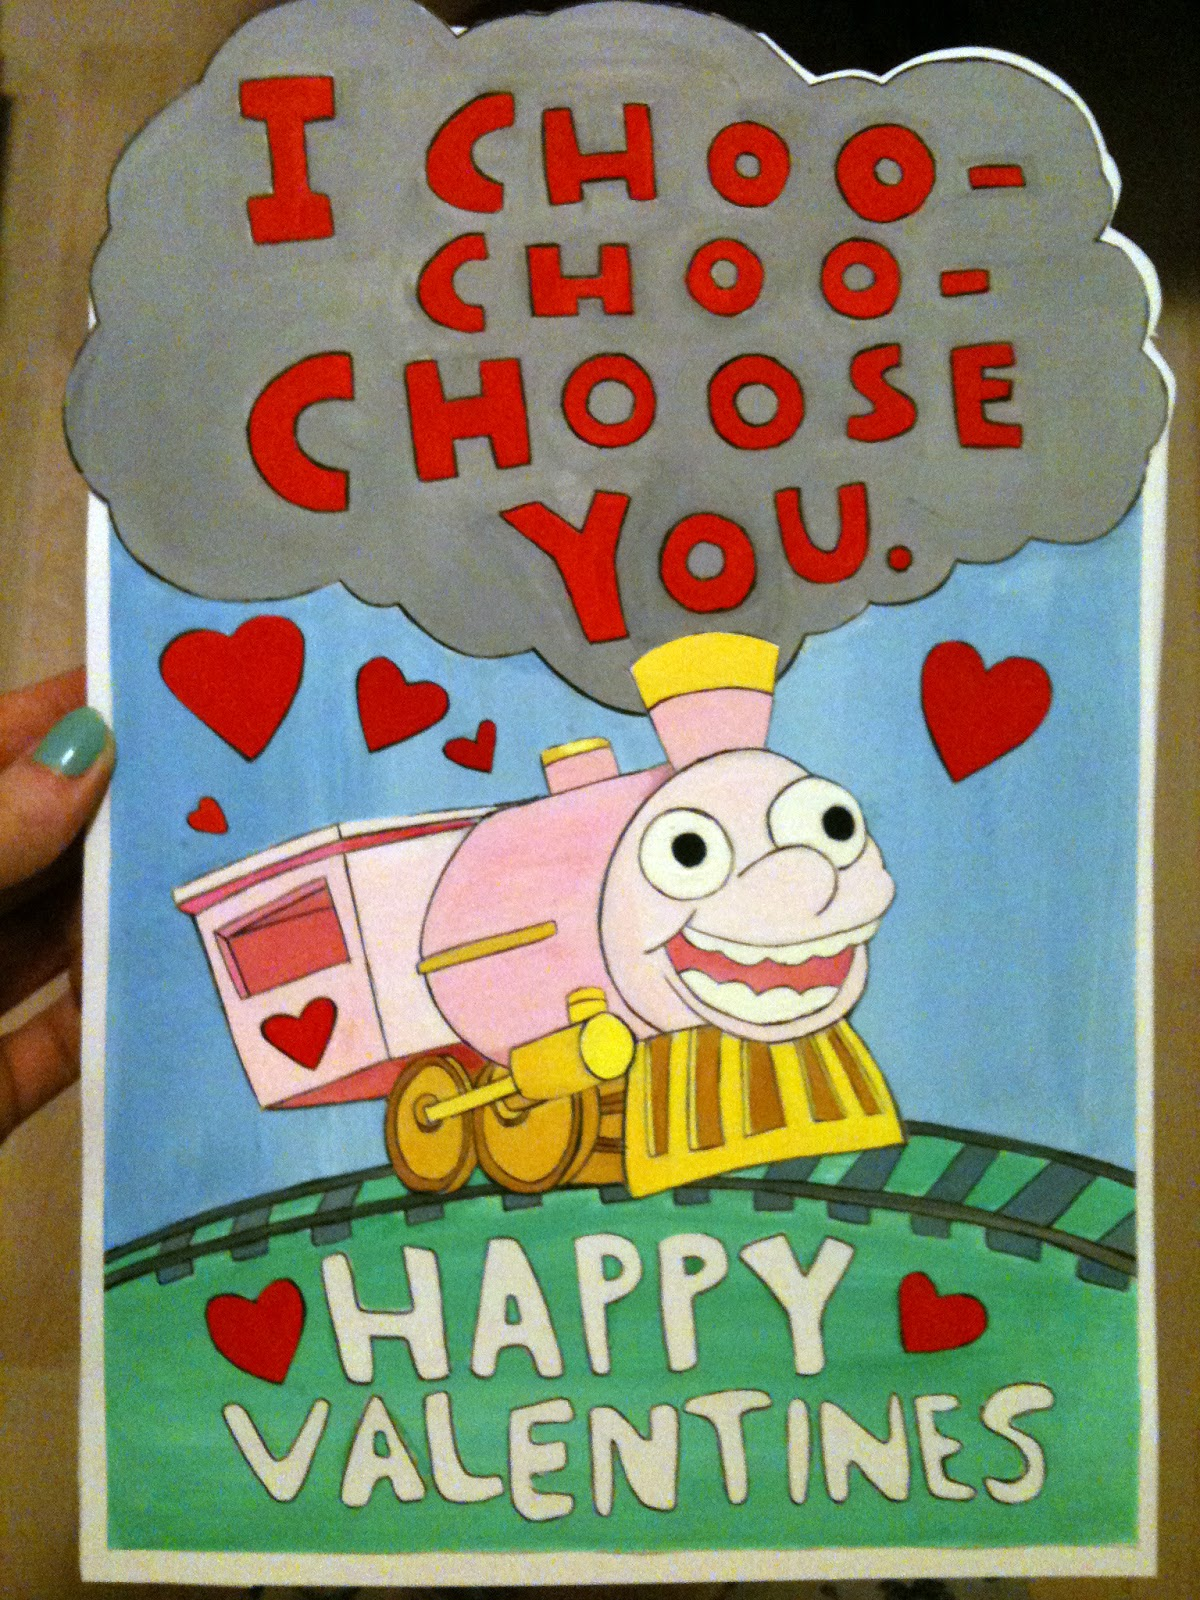 picture relating to I Choo Choo Choose You Printable Card referred to as Marizzles Pictures: I Choo Choo Get On your own